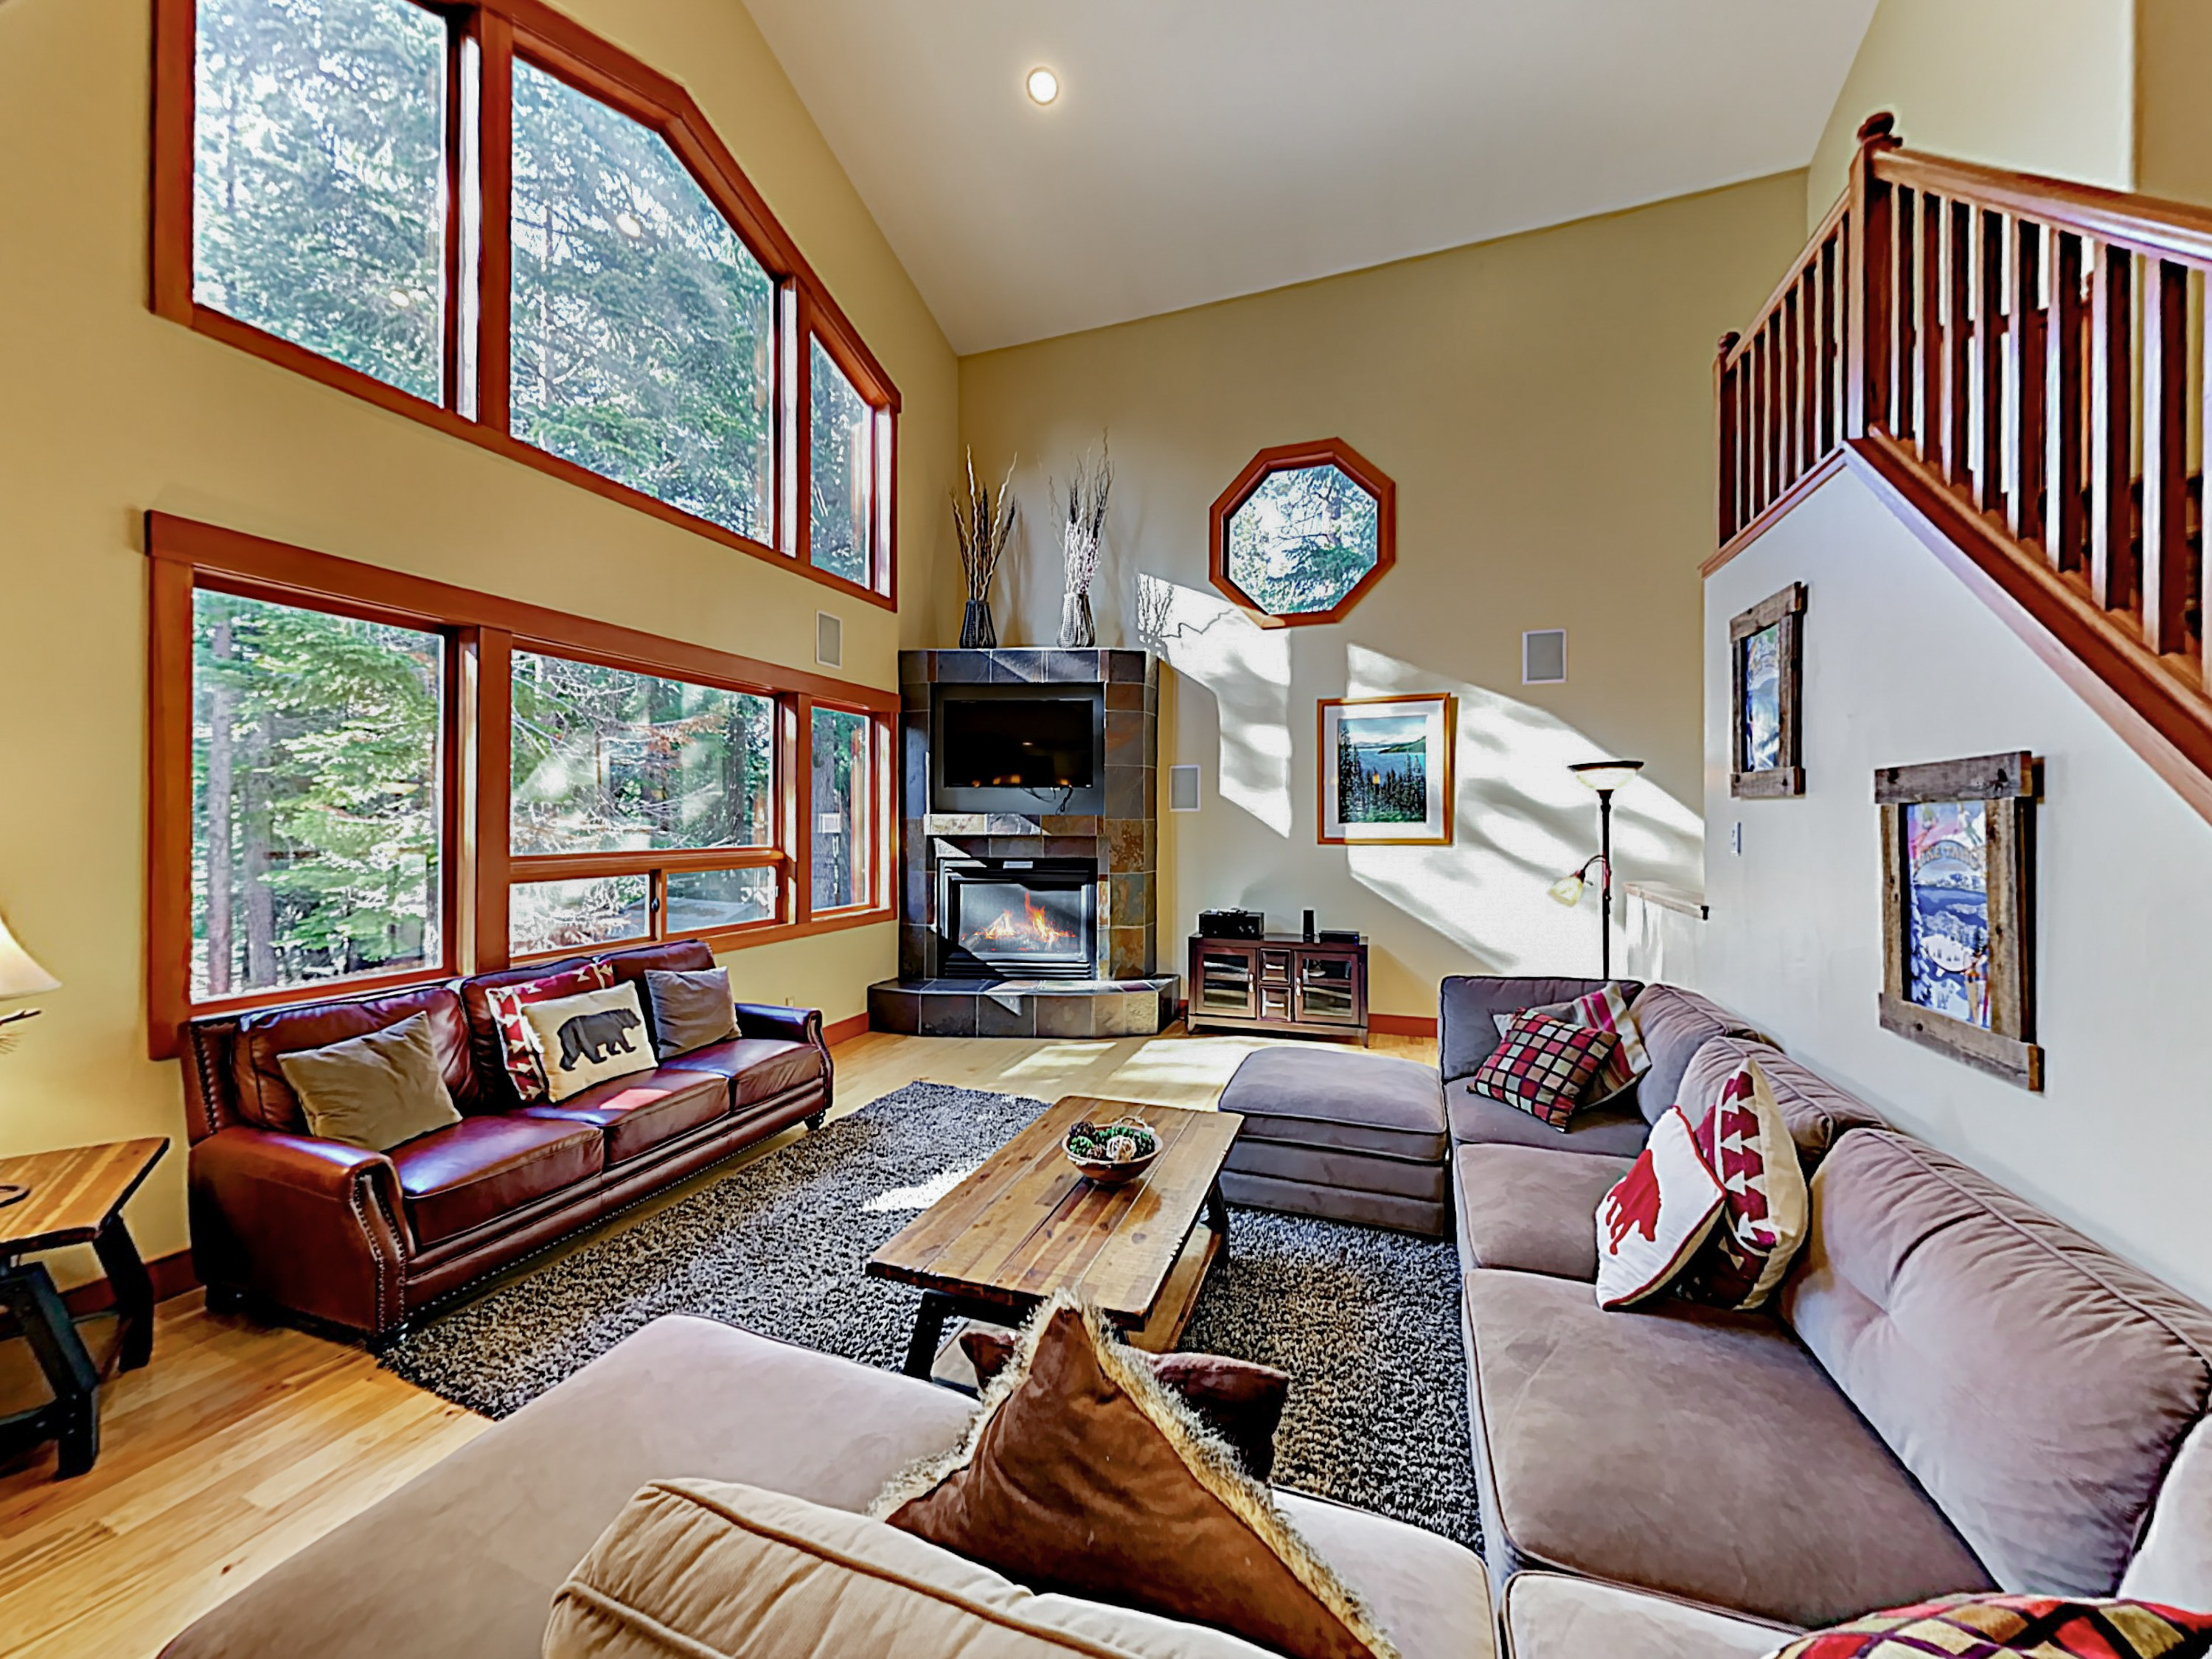 South Lake Tahoe CA Vacation Rental Welcome to South